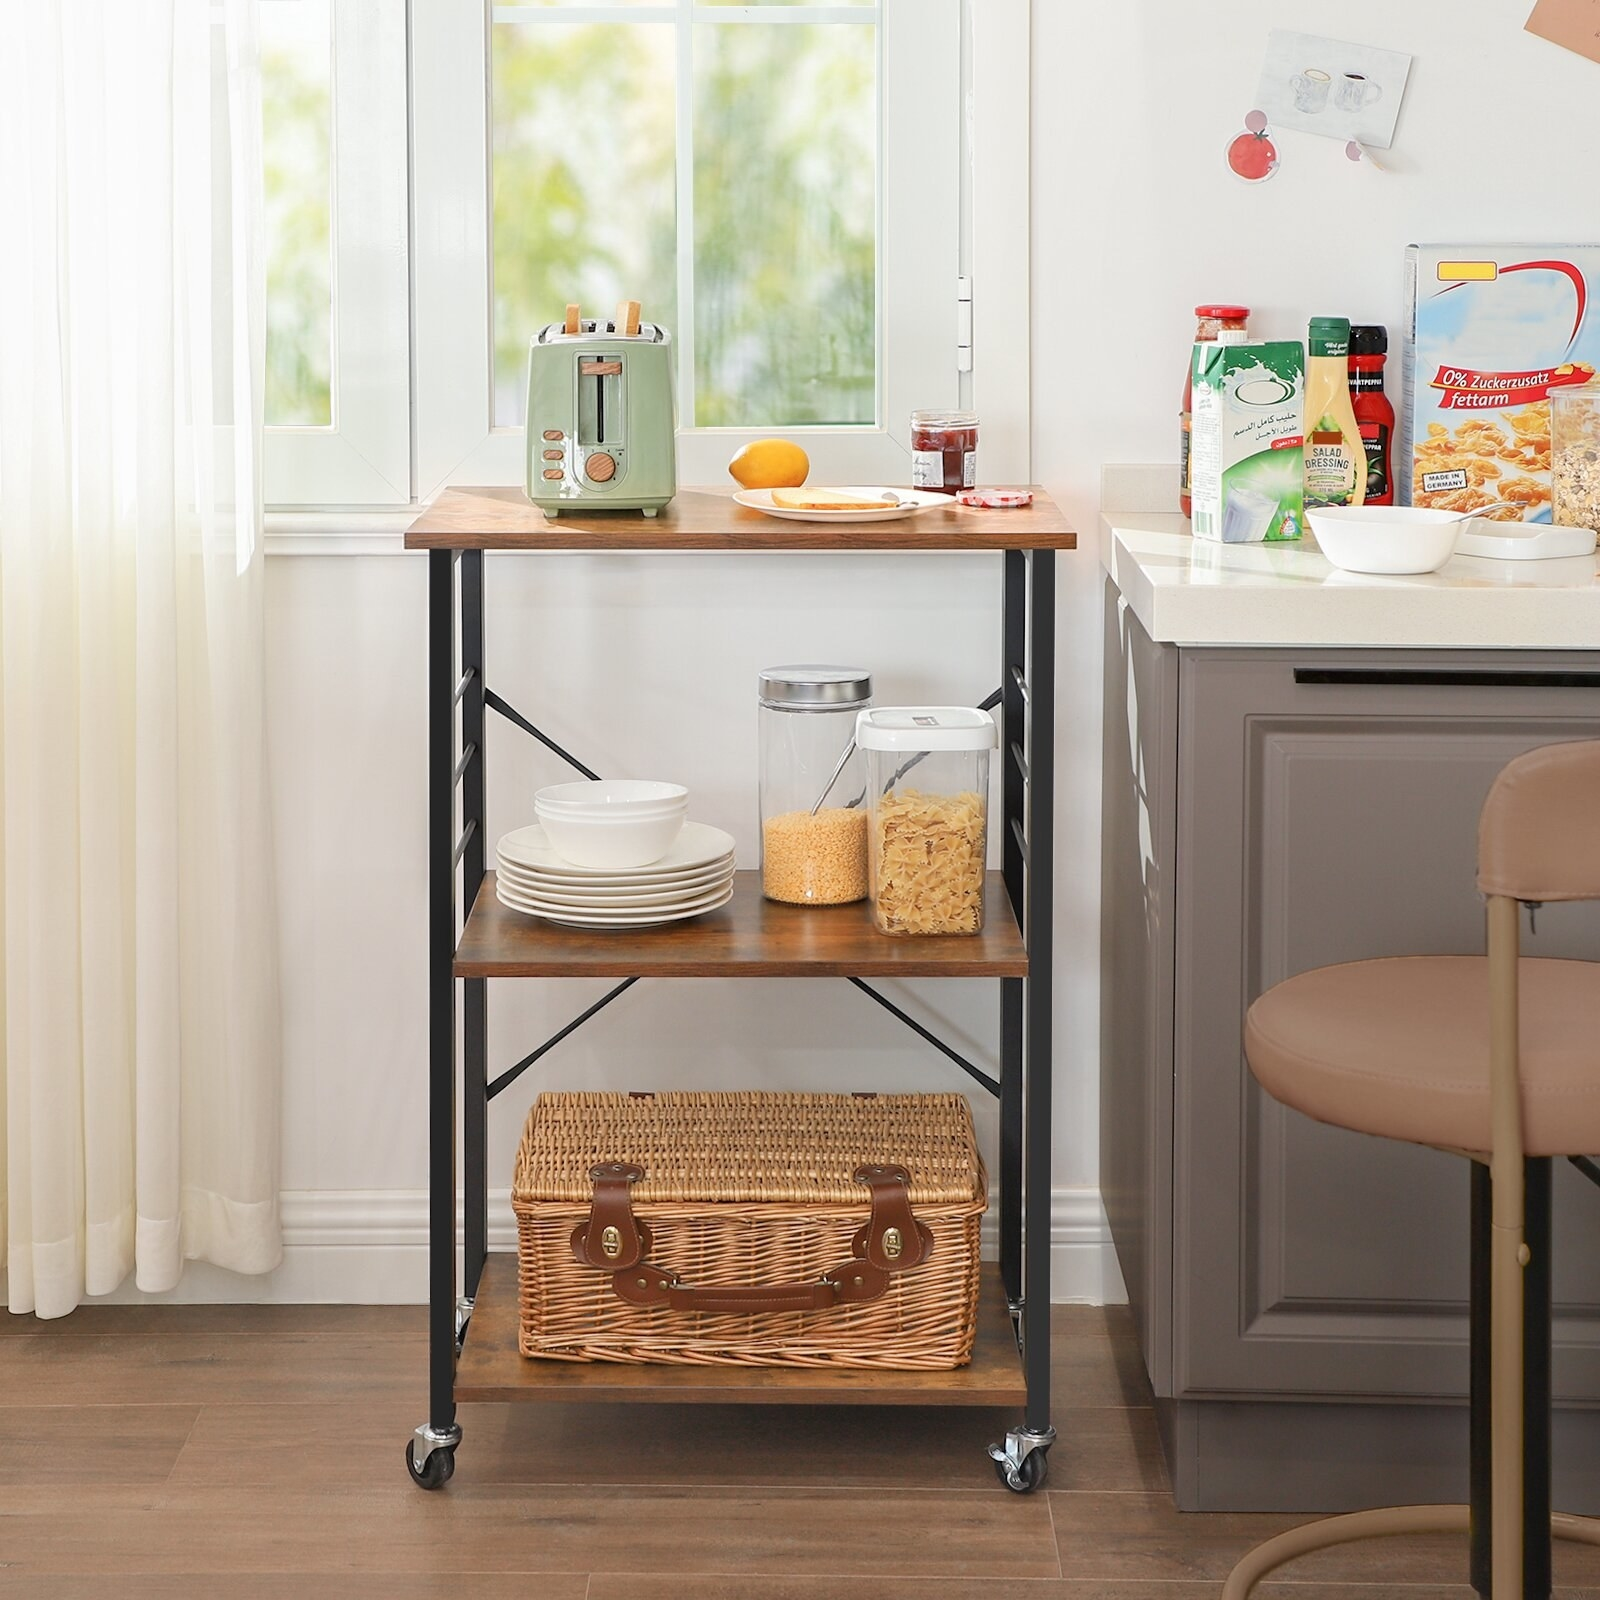 black and wooden rolling kitchen cart with things on it